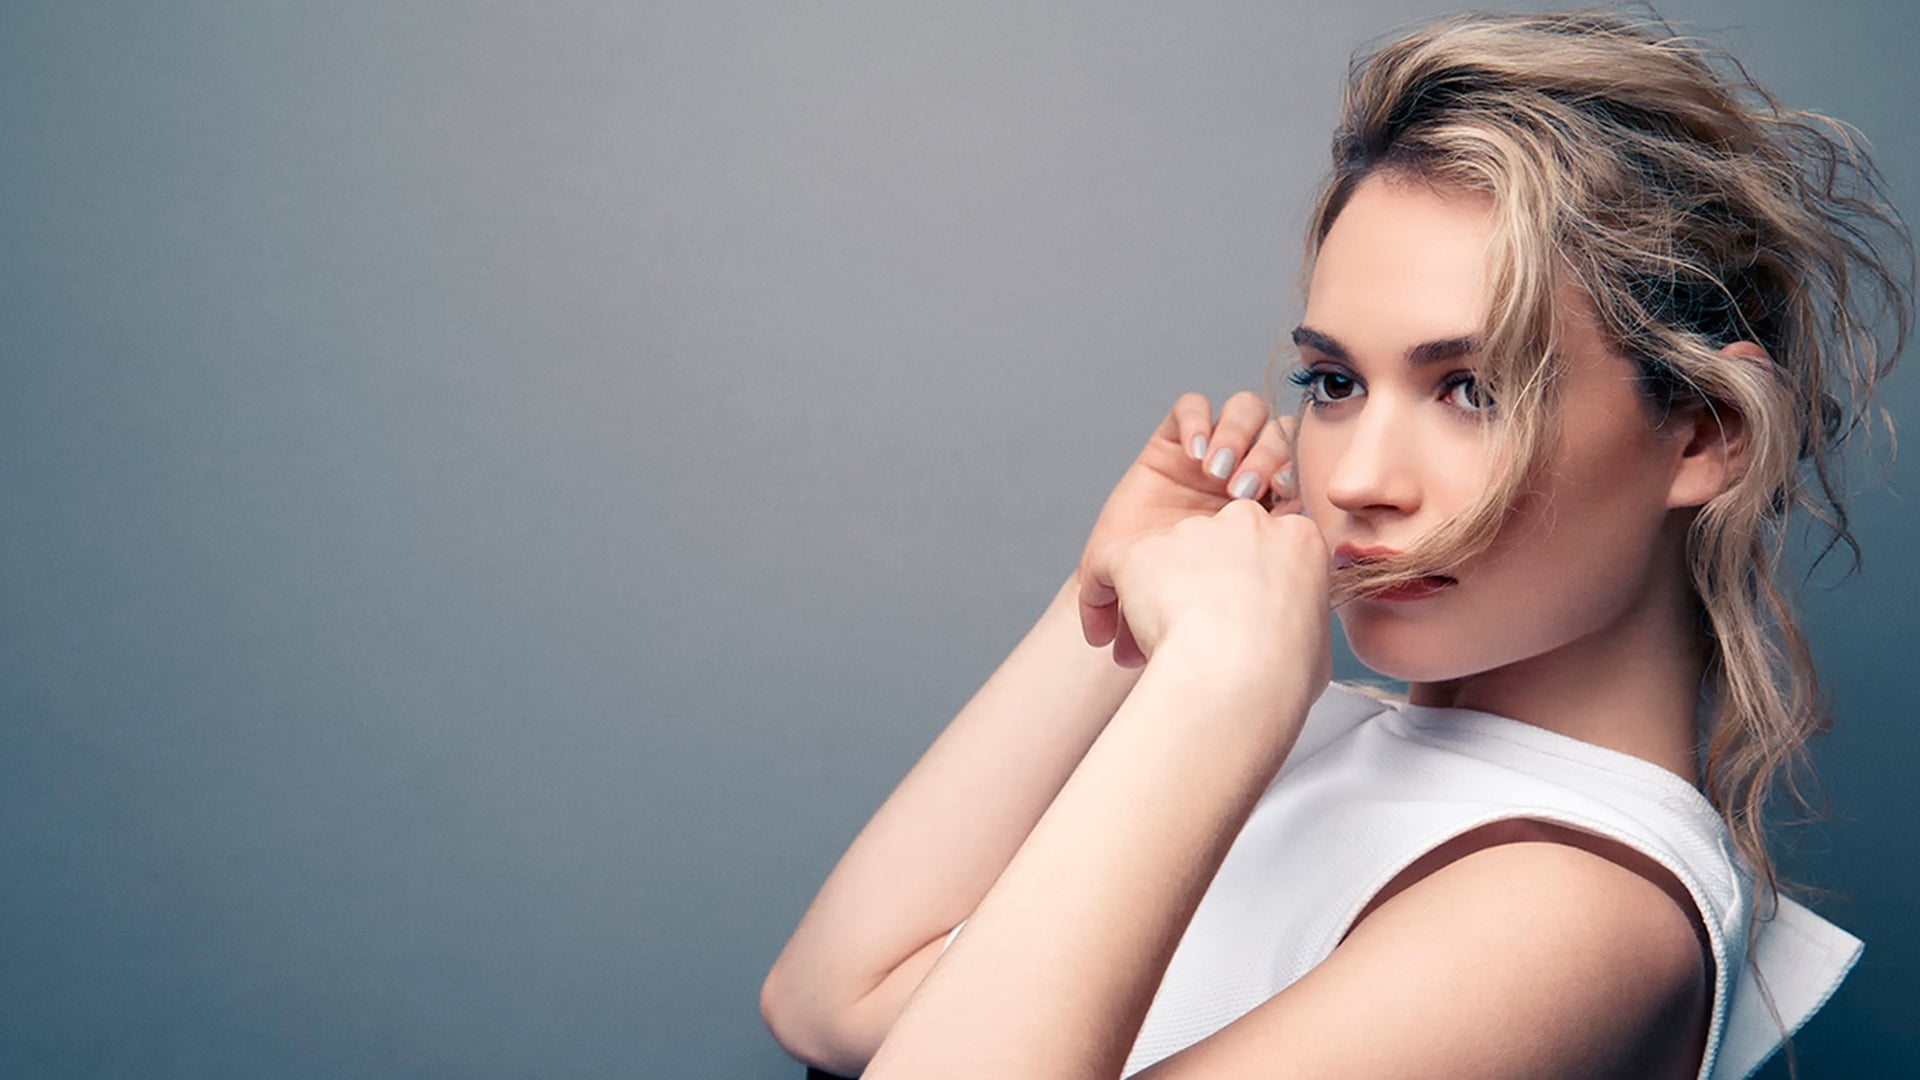 1920x1080 - Lily James Wallpapers 19